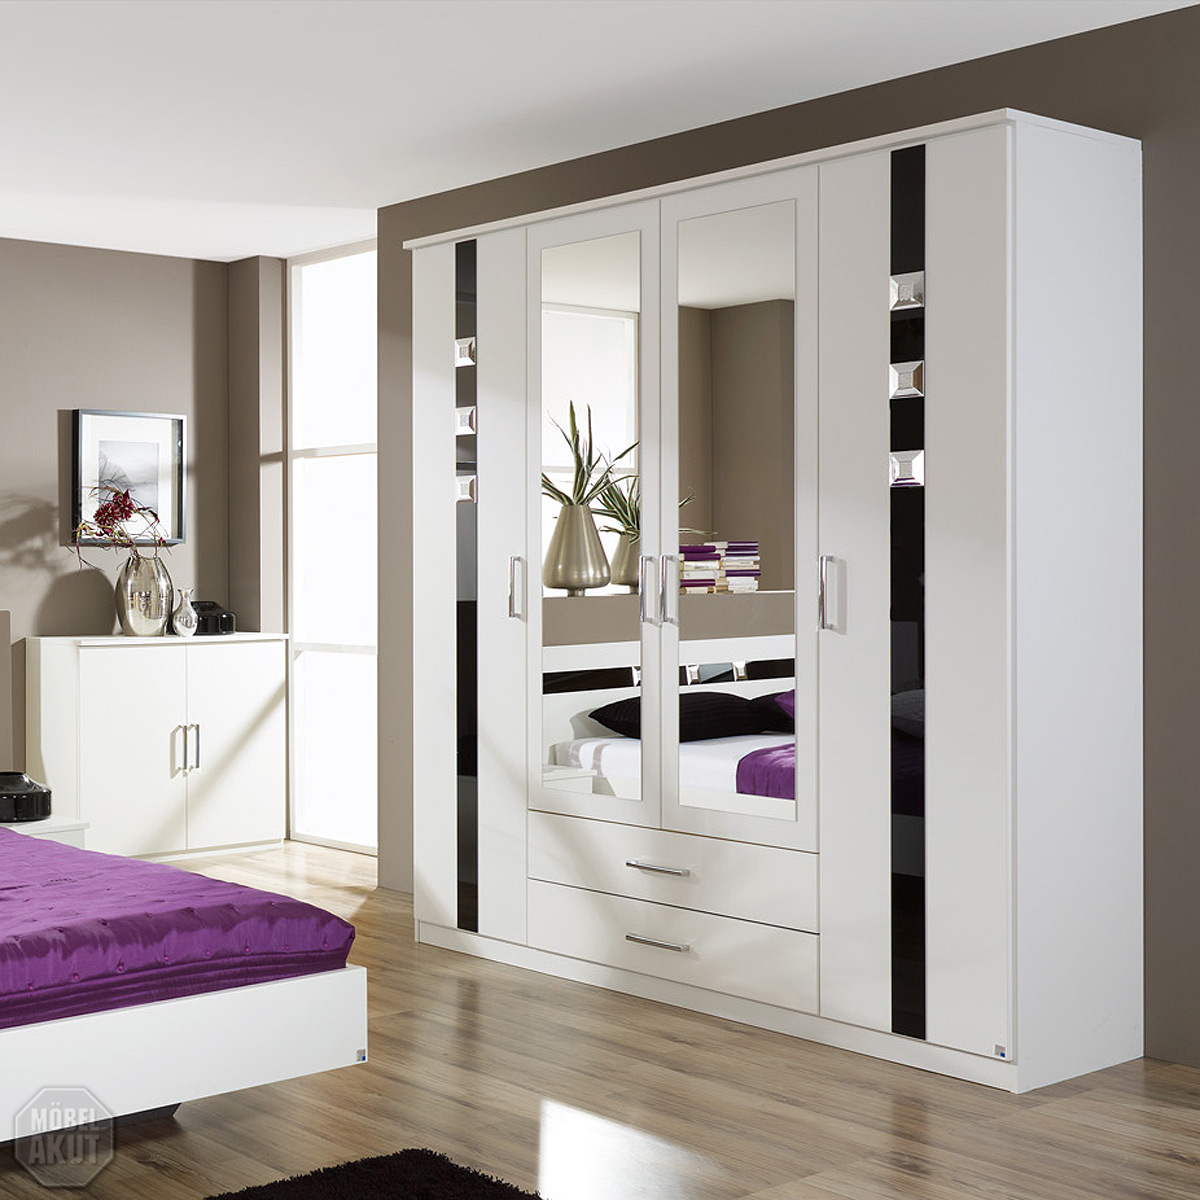 kleiderschrank tours schrank schlafzimmerschrank wei schwarz glas strass ebay. Black Bedroom Furniture Sets. Home Design Ideas